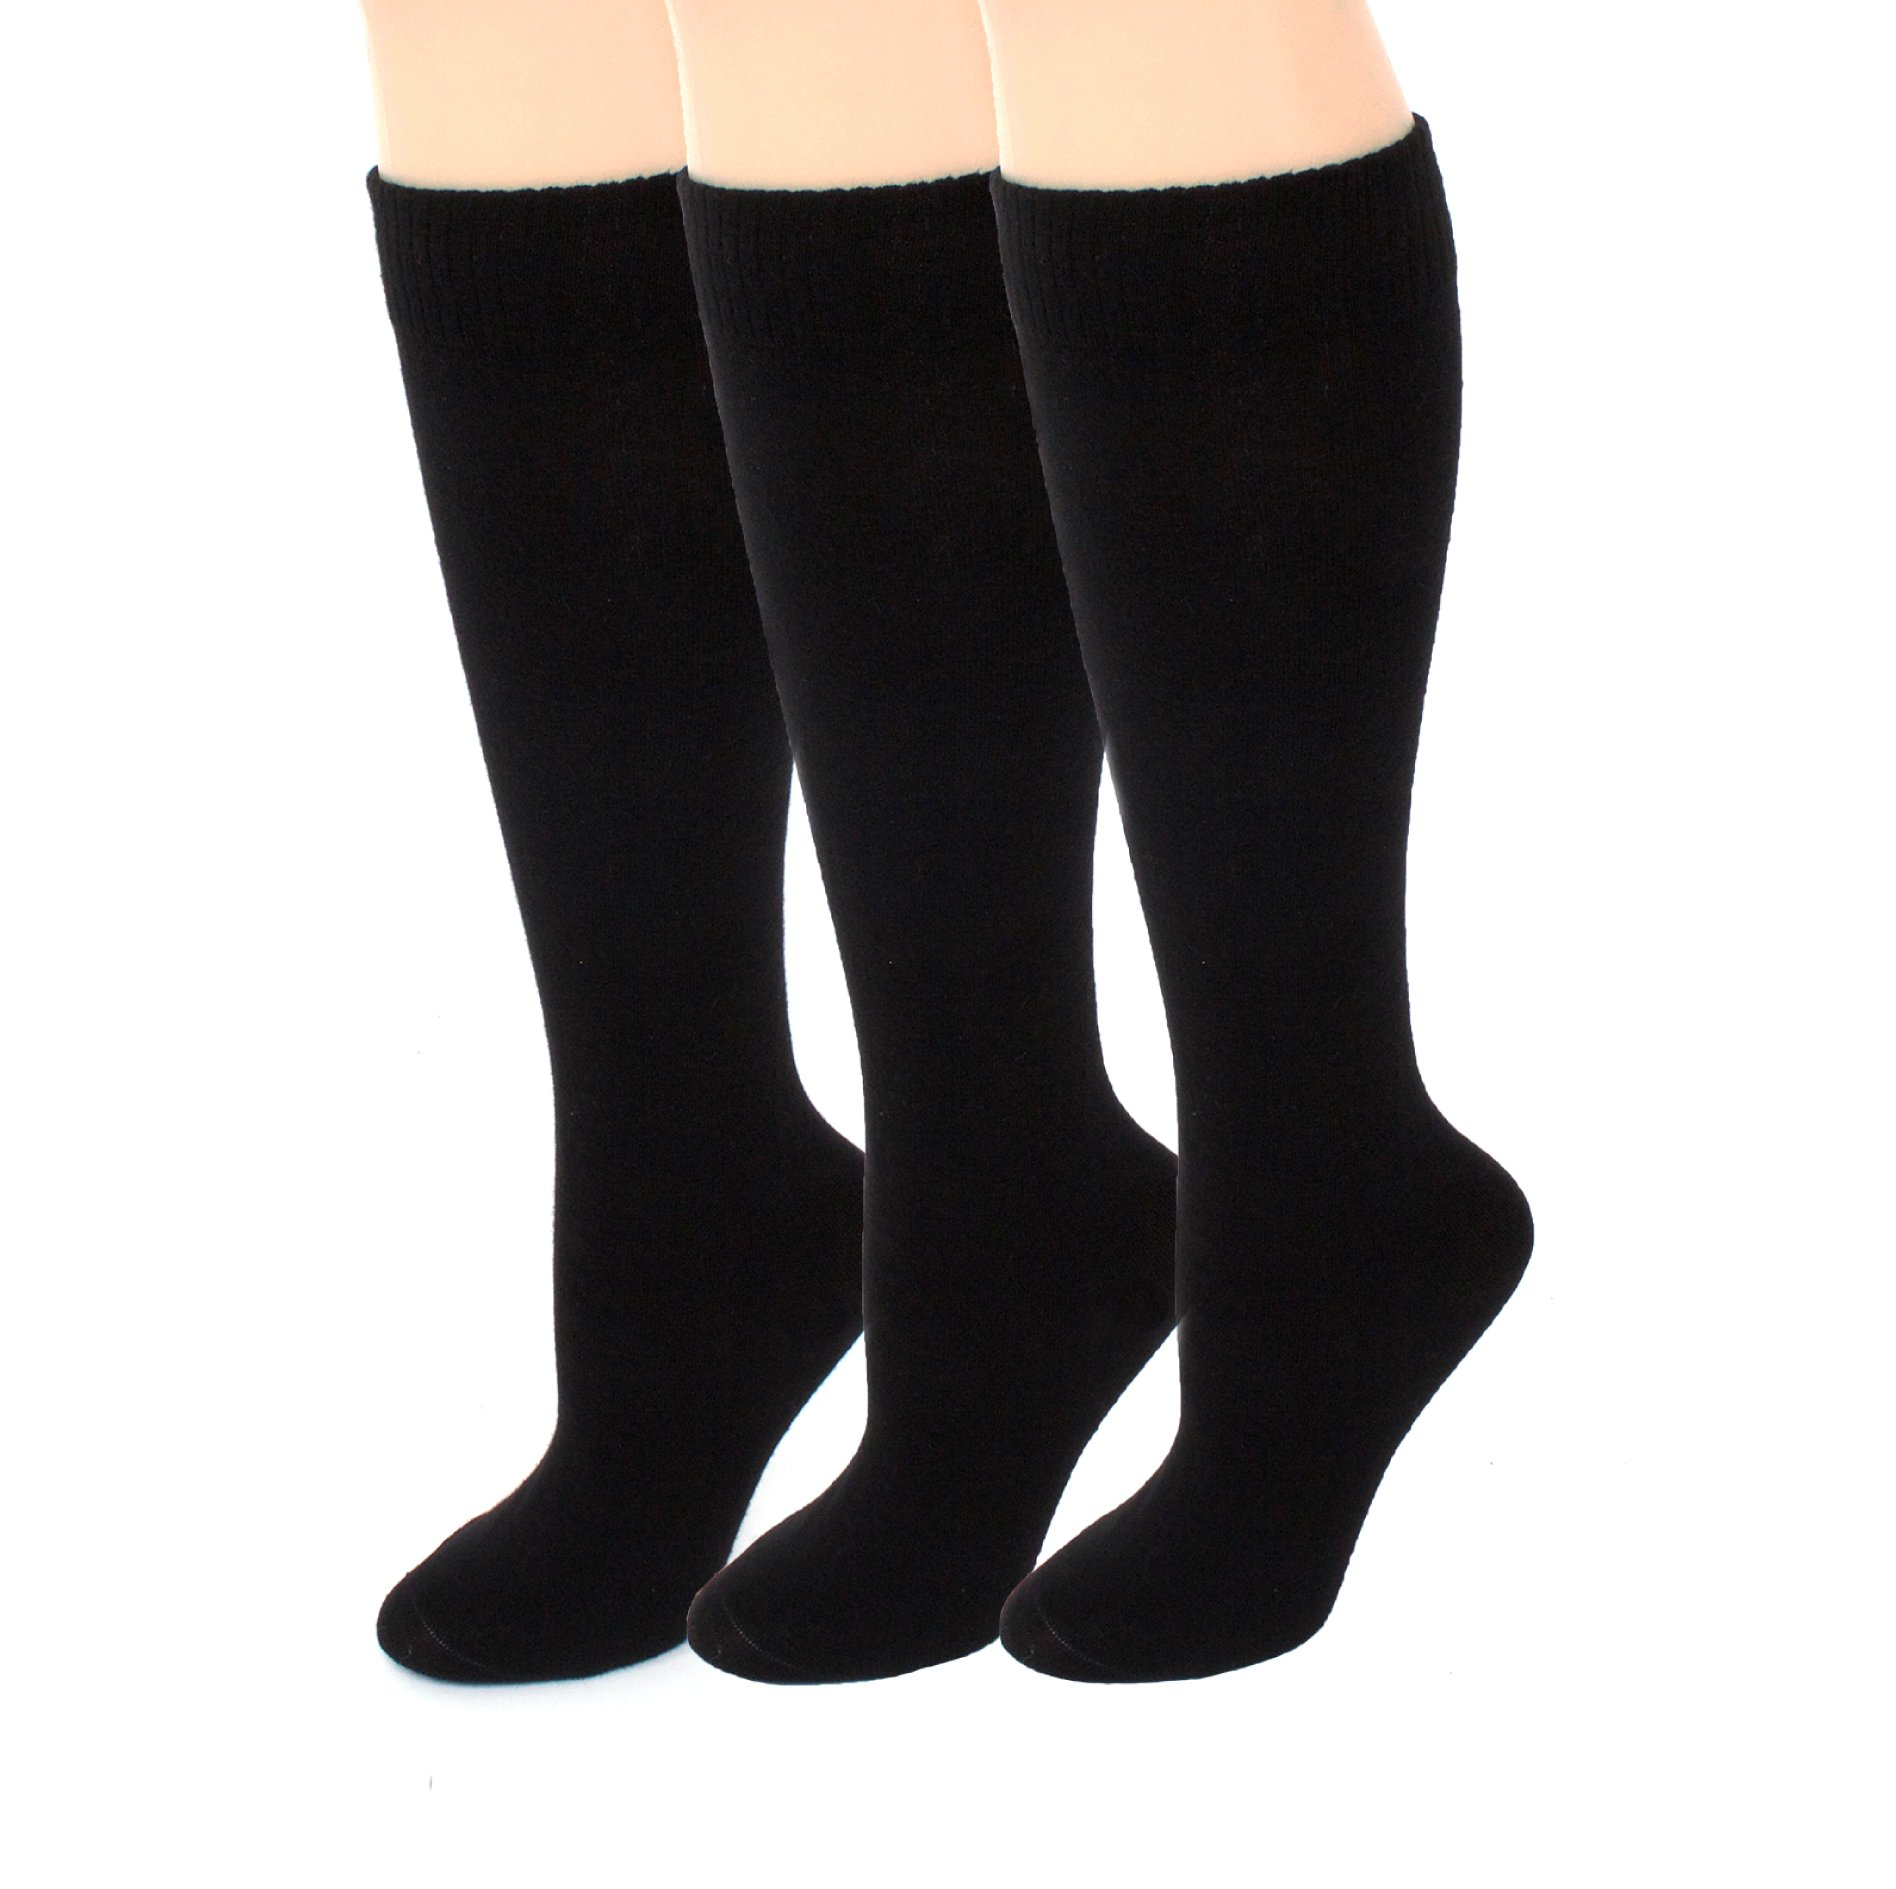 Amazon.com: Diabetic Socks Knee High | Womens Black/Navy